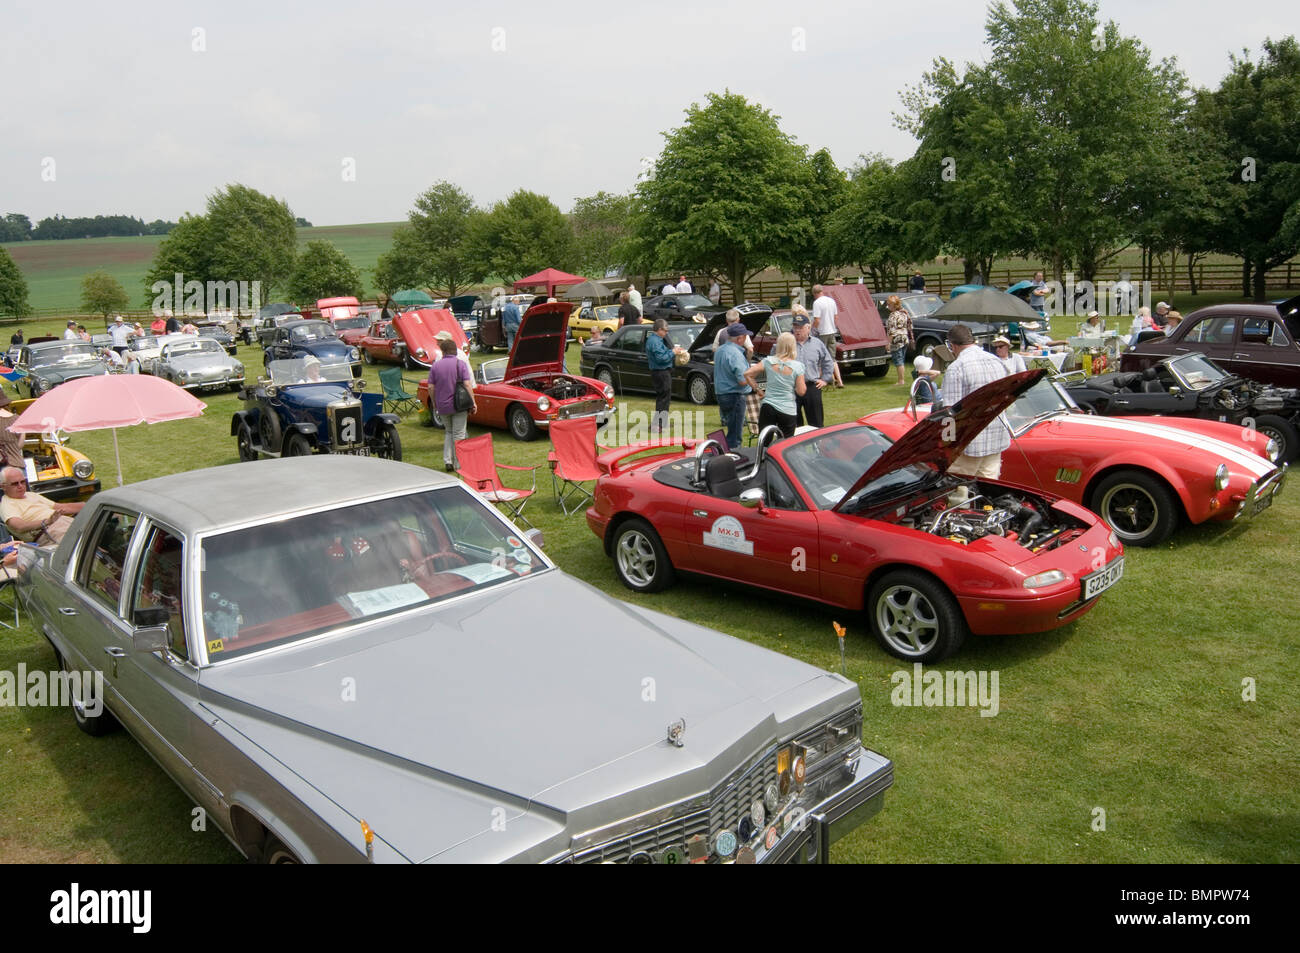 car show cars shows showing classic classic old restored well Stock ...